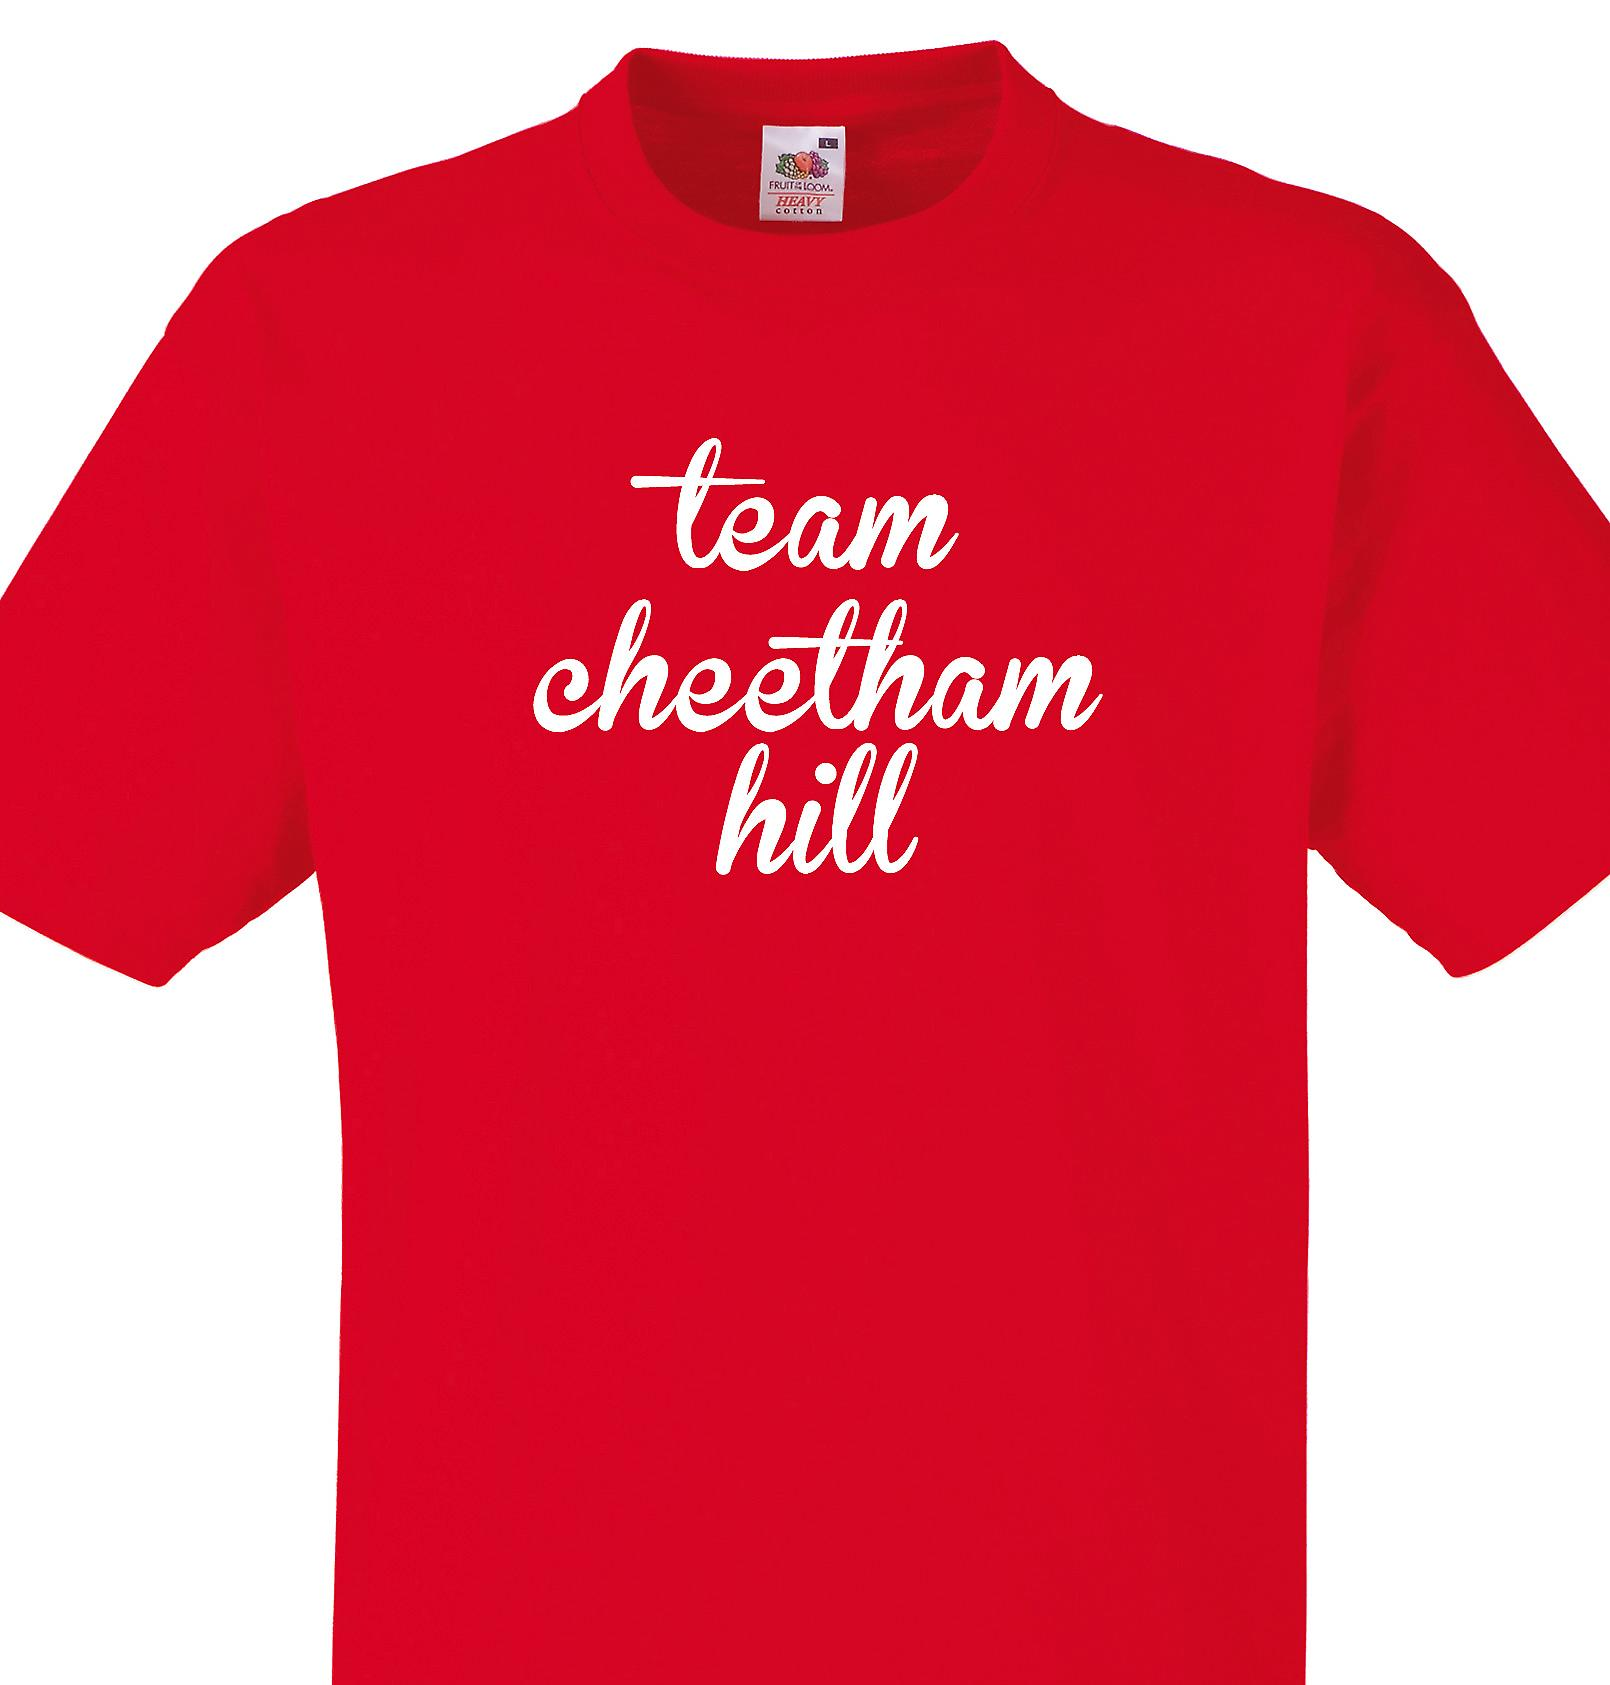 Team Cheetham hill Red T shirt